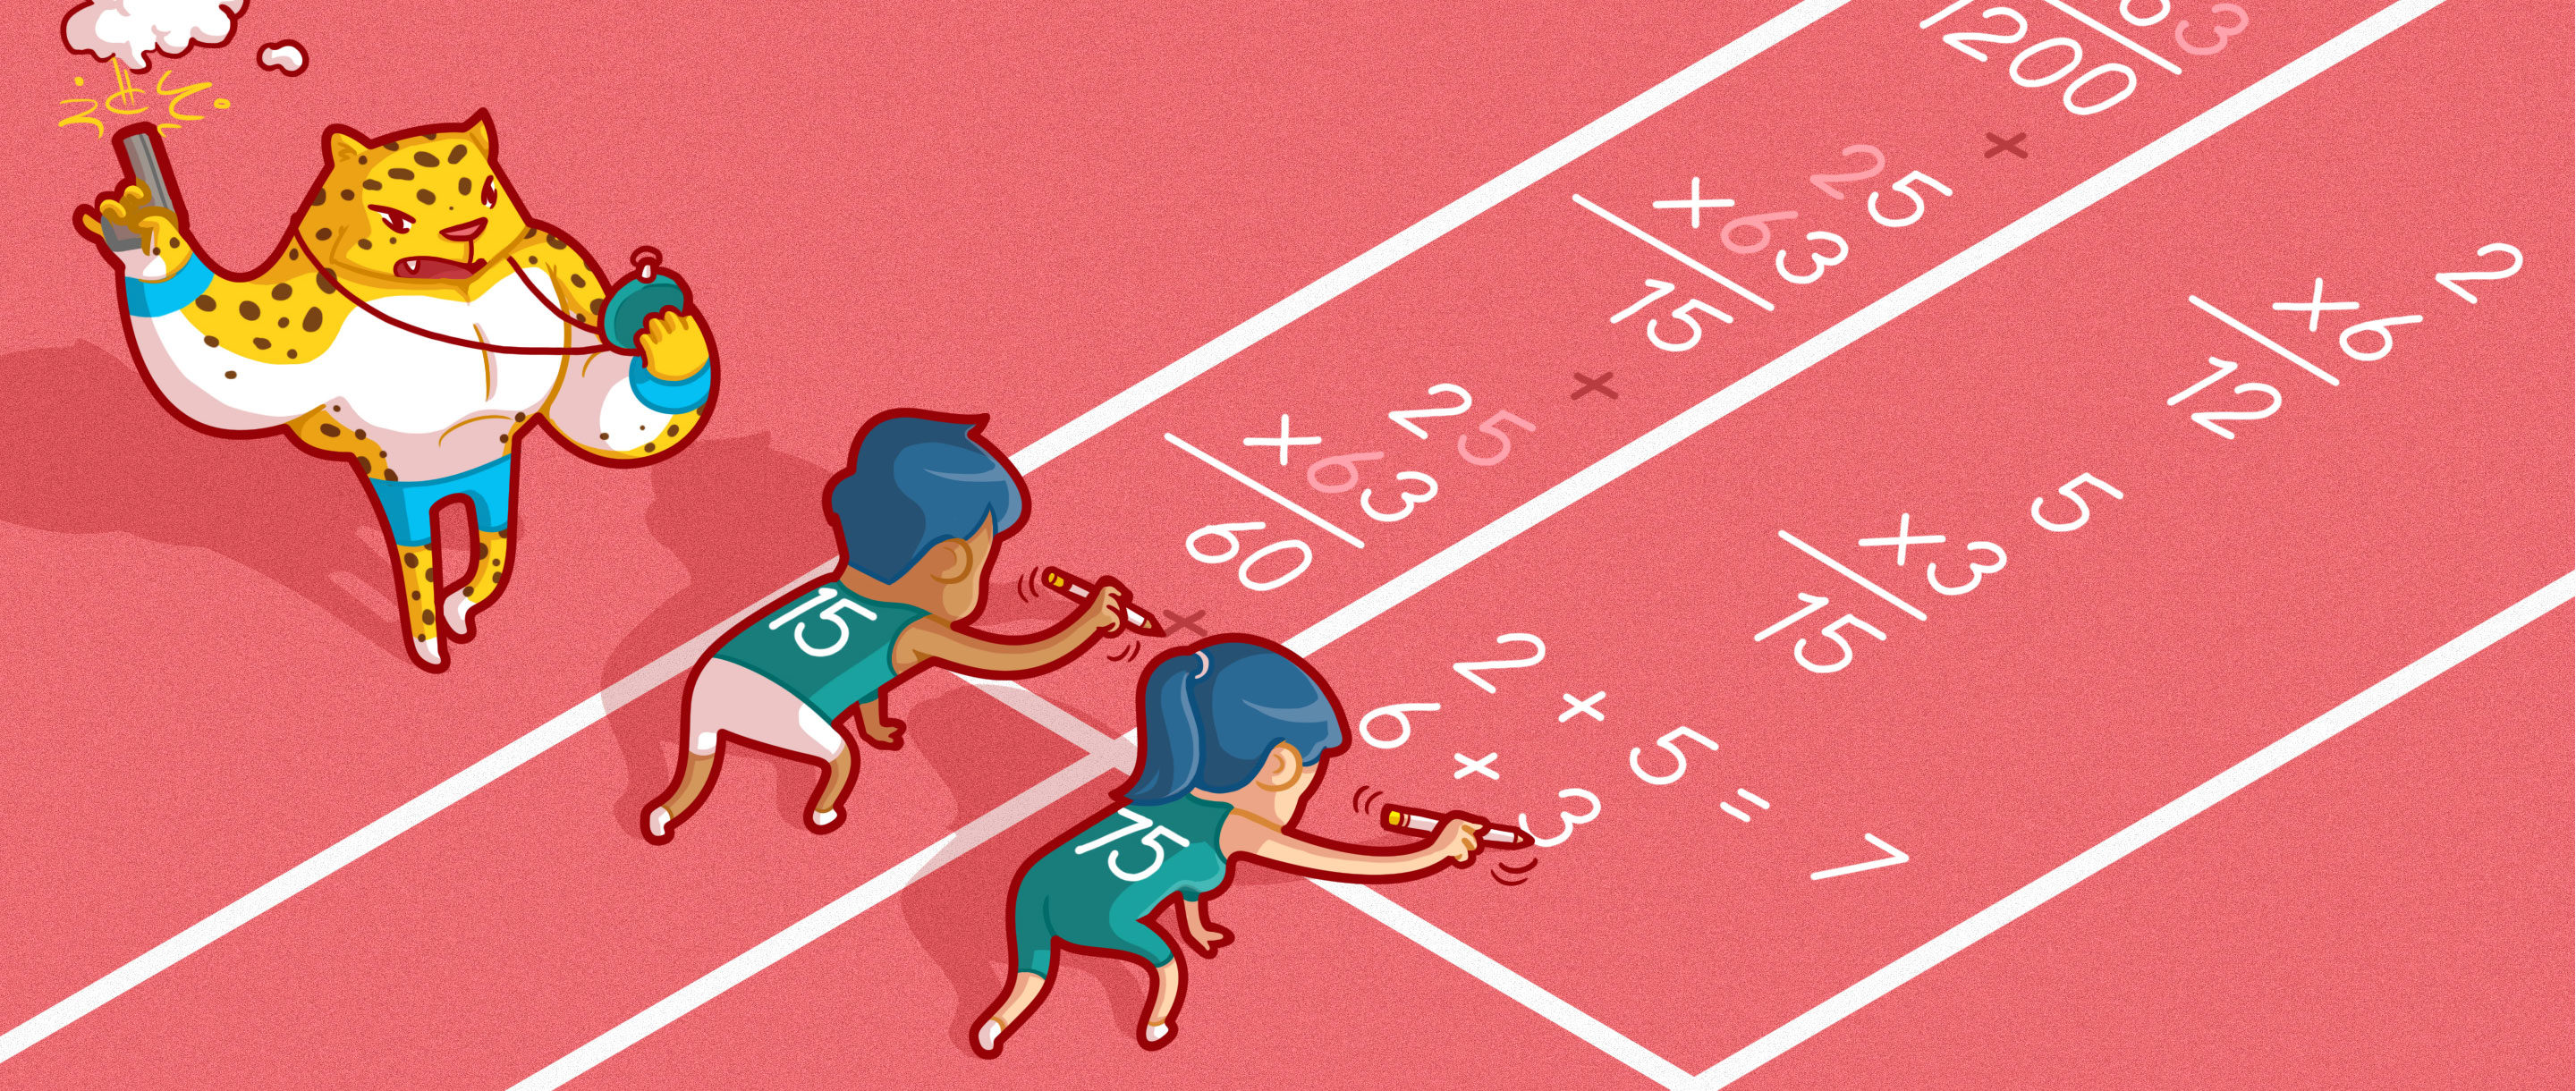 Two competitors are racing to solve the multiplication problem 25 times 63 in two separate lanes of a running track. One competitor is using the standard multiplication algorithm while the other is using Karatsuba method.